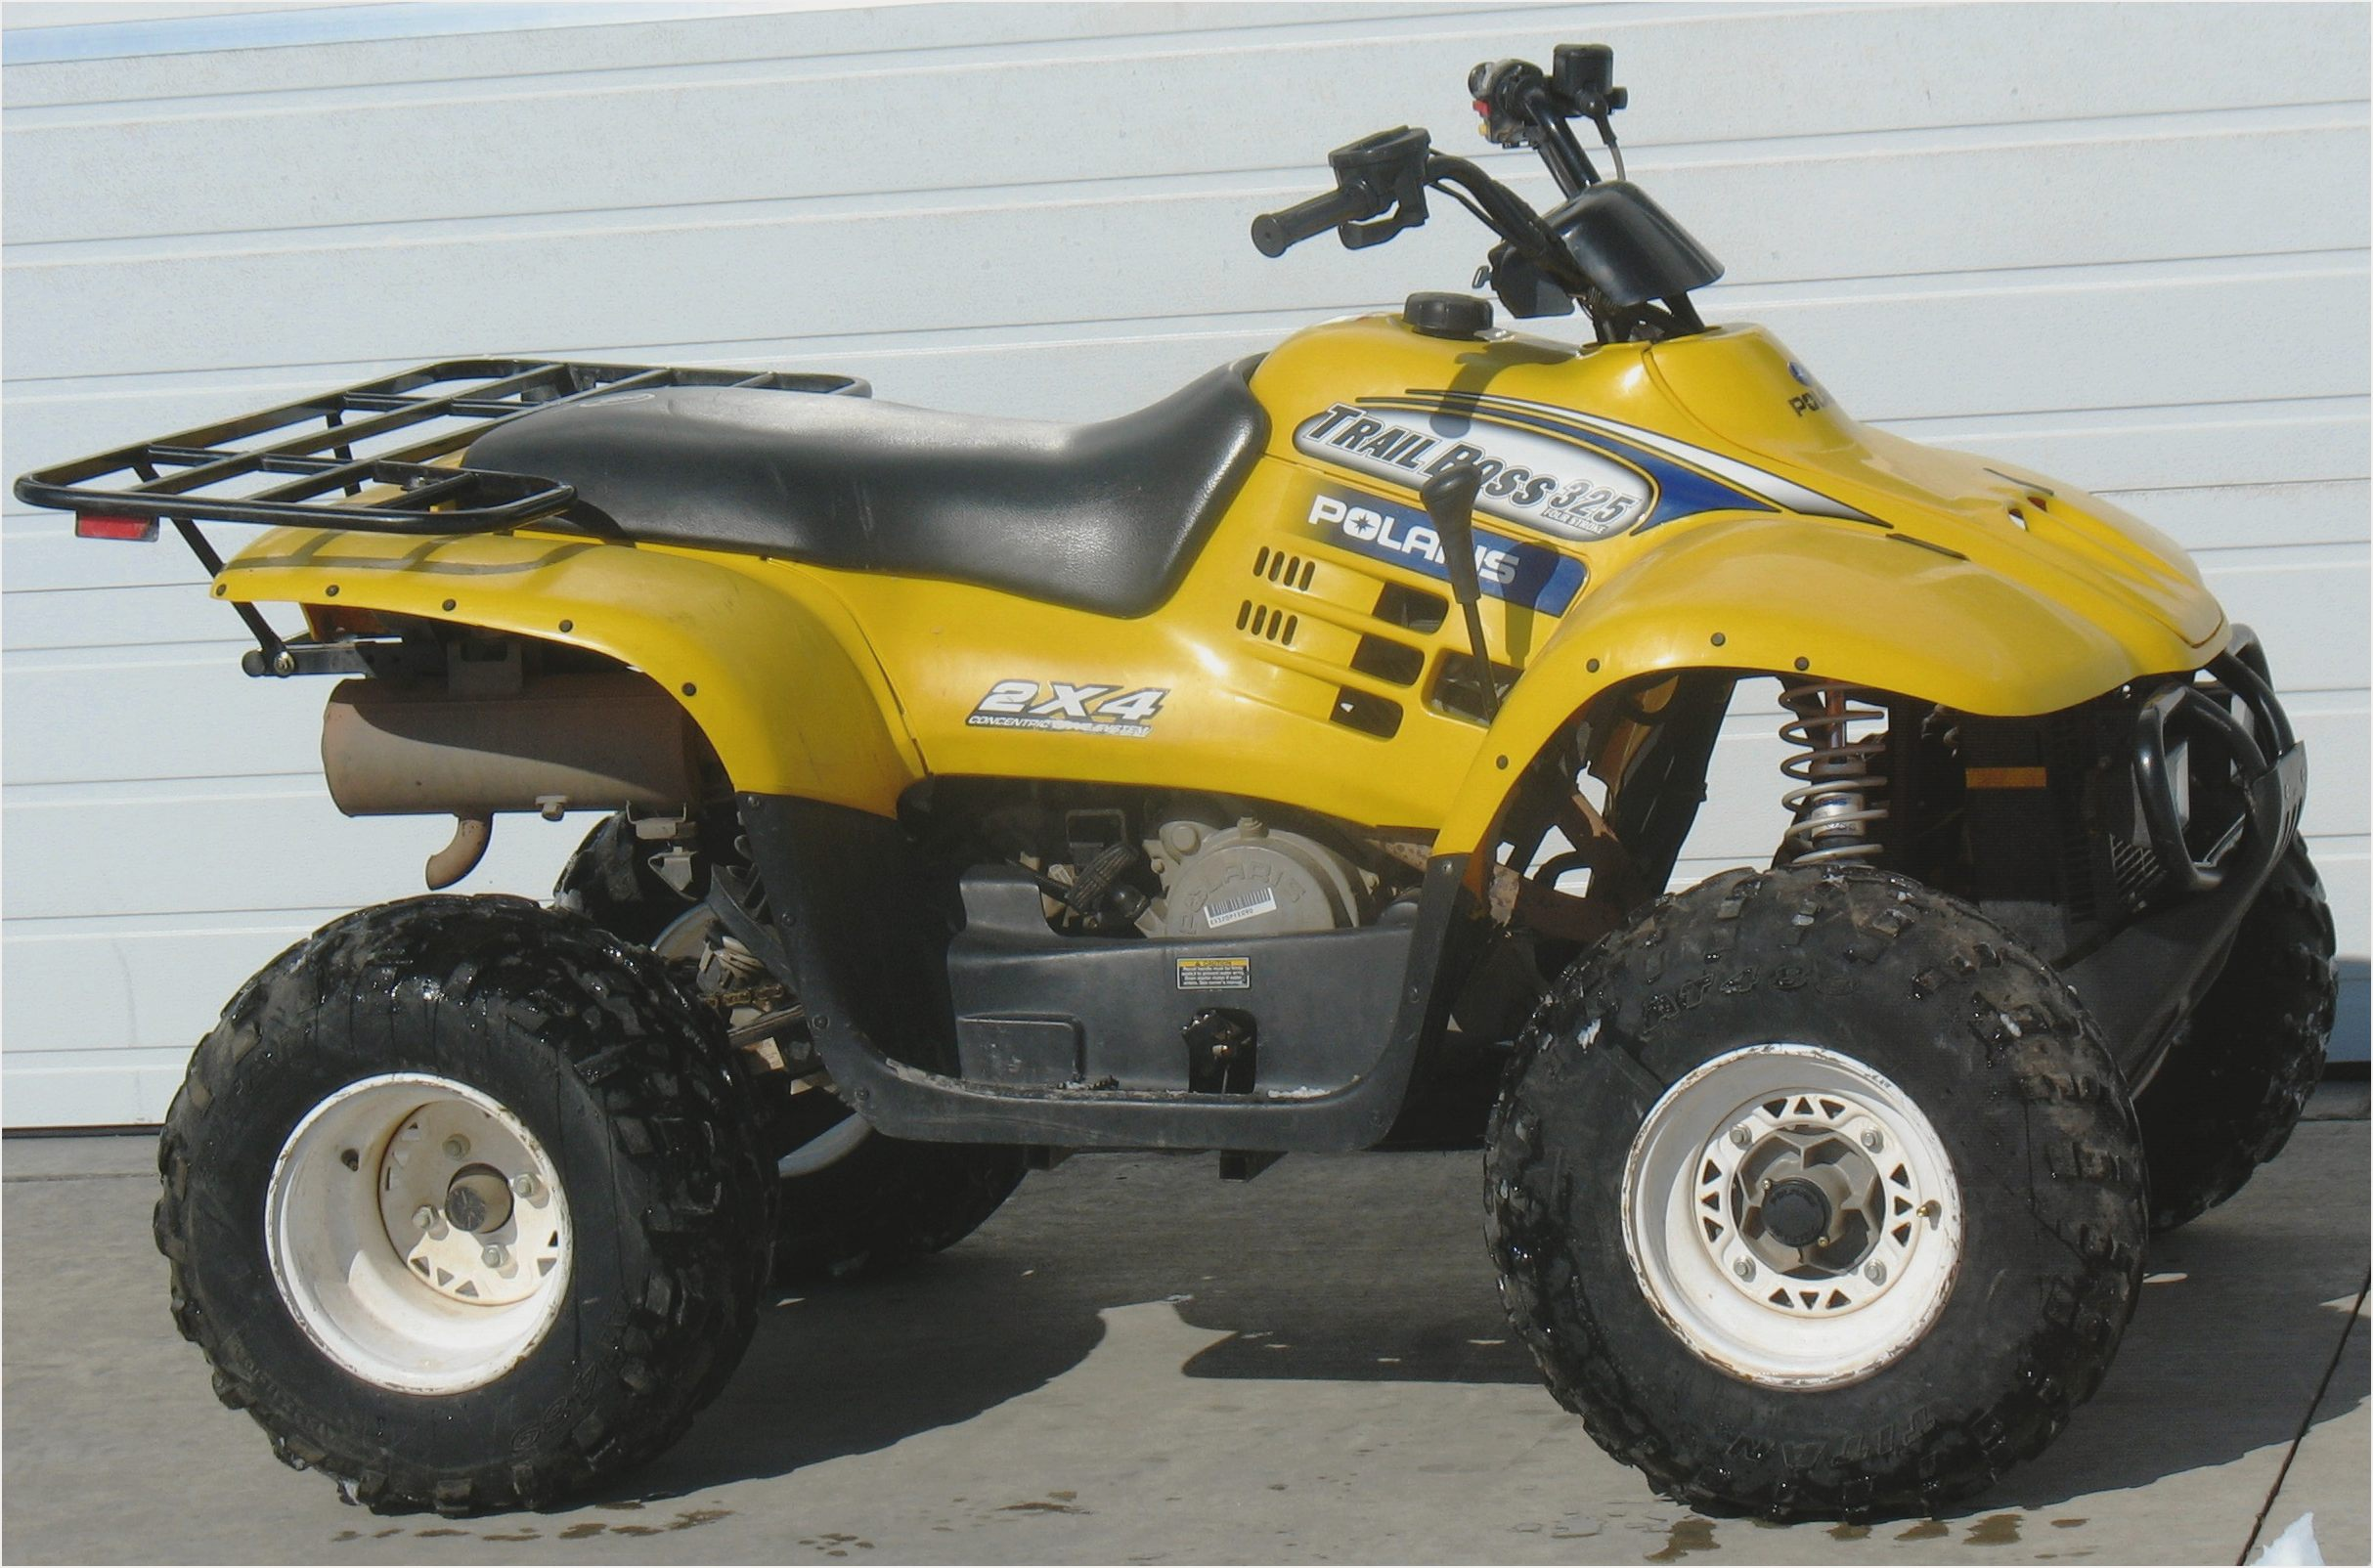 Polaris Trail Boss 325 2002 images #120552